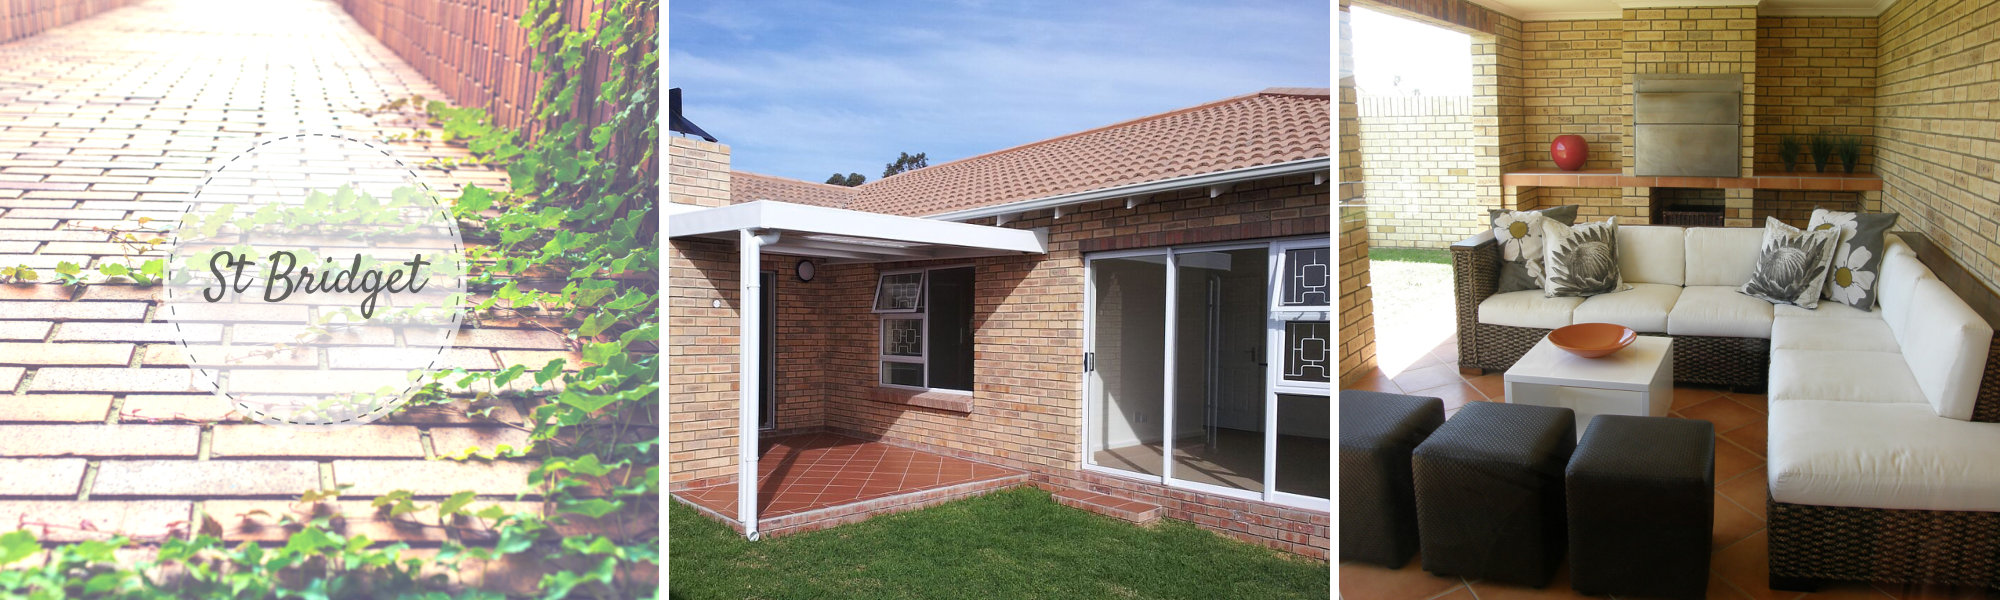 st_bridget_townhouse_port_elizabeth